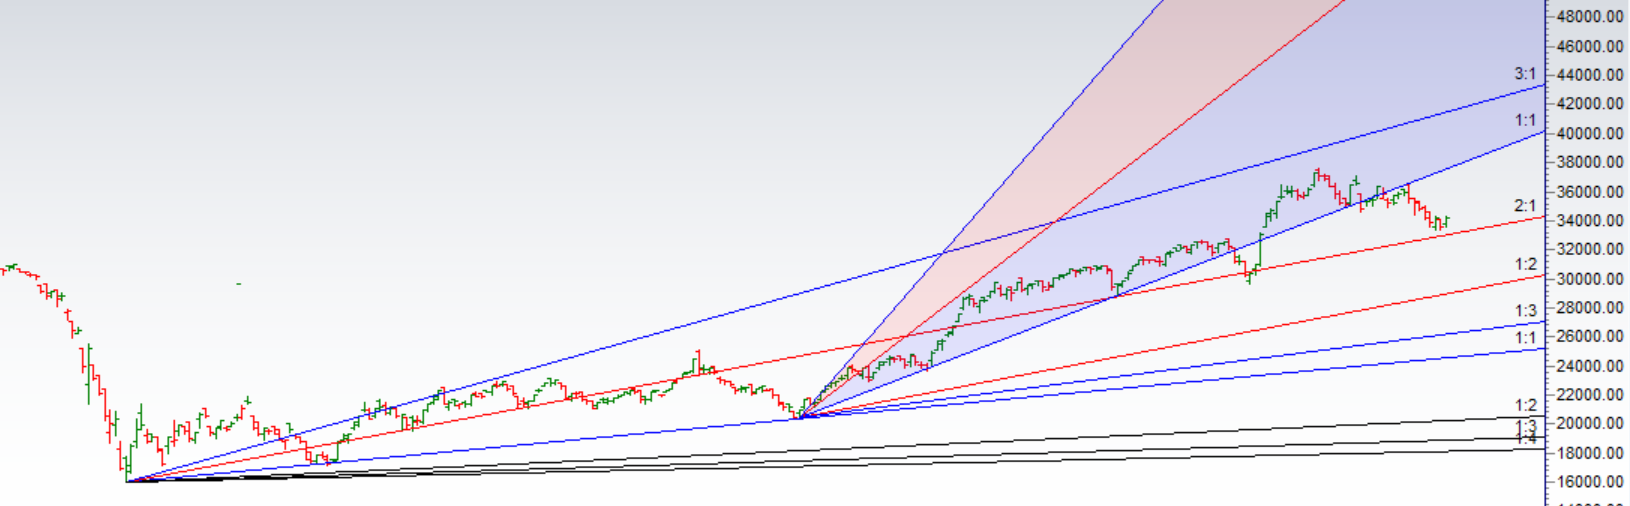 Bank Nifty Analysis for 24 March